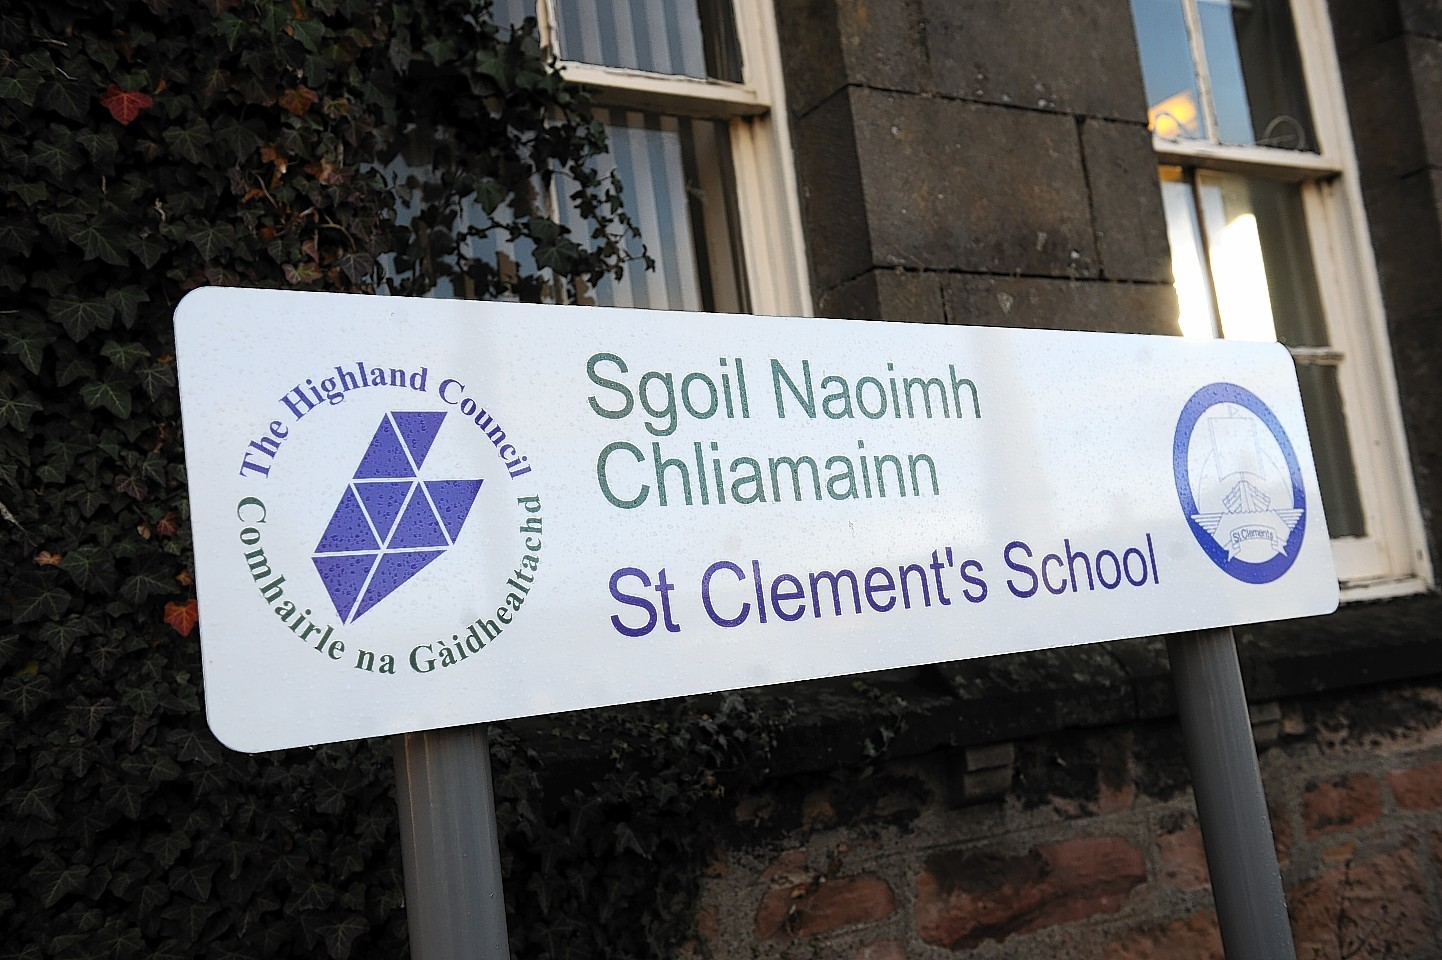 St Clement's School